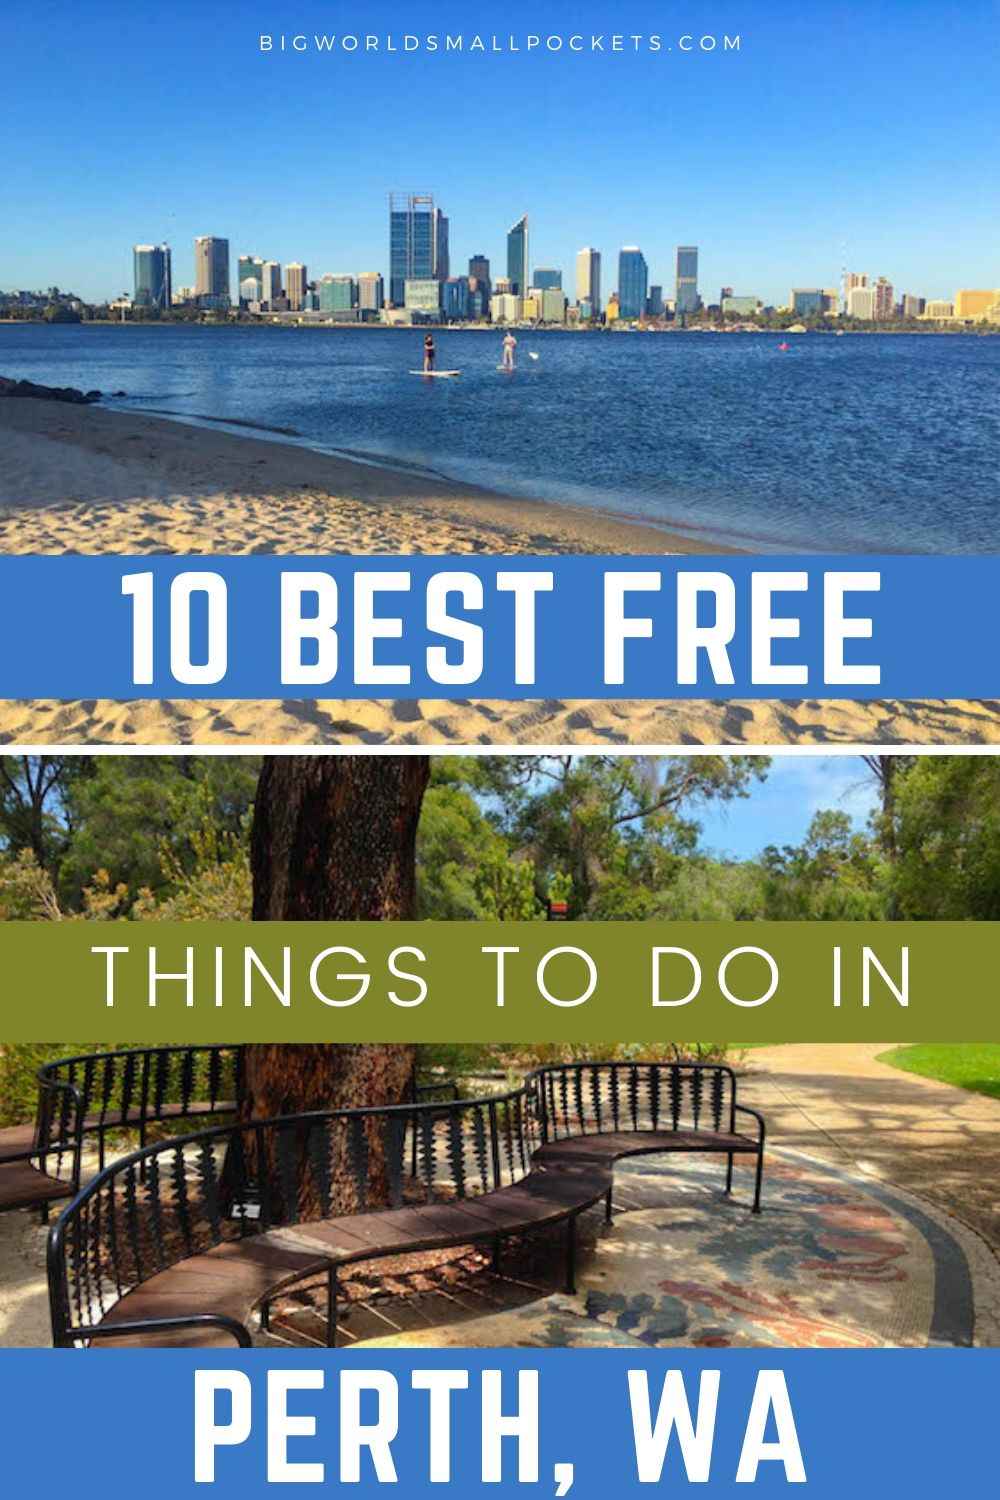 10 Best FREE To Do in Perth, Western Australia